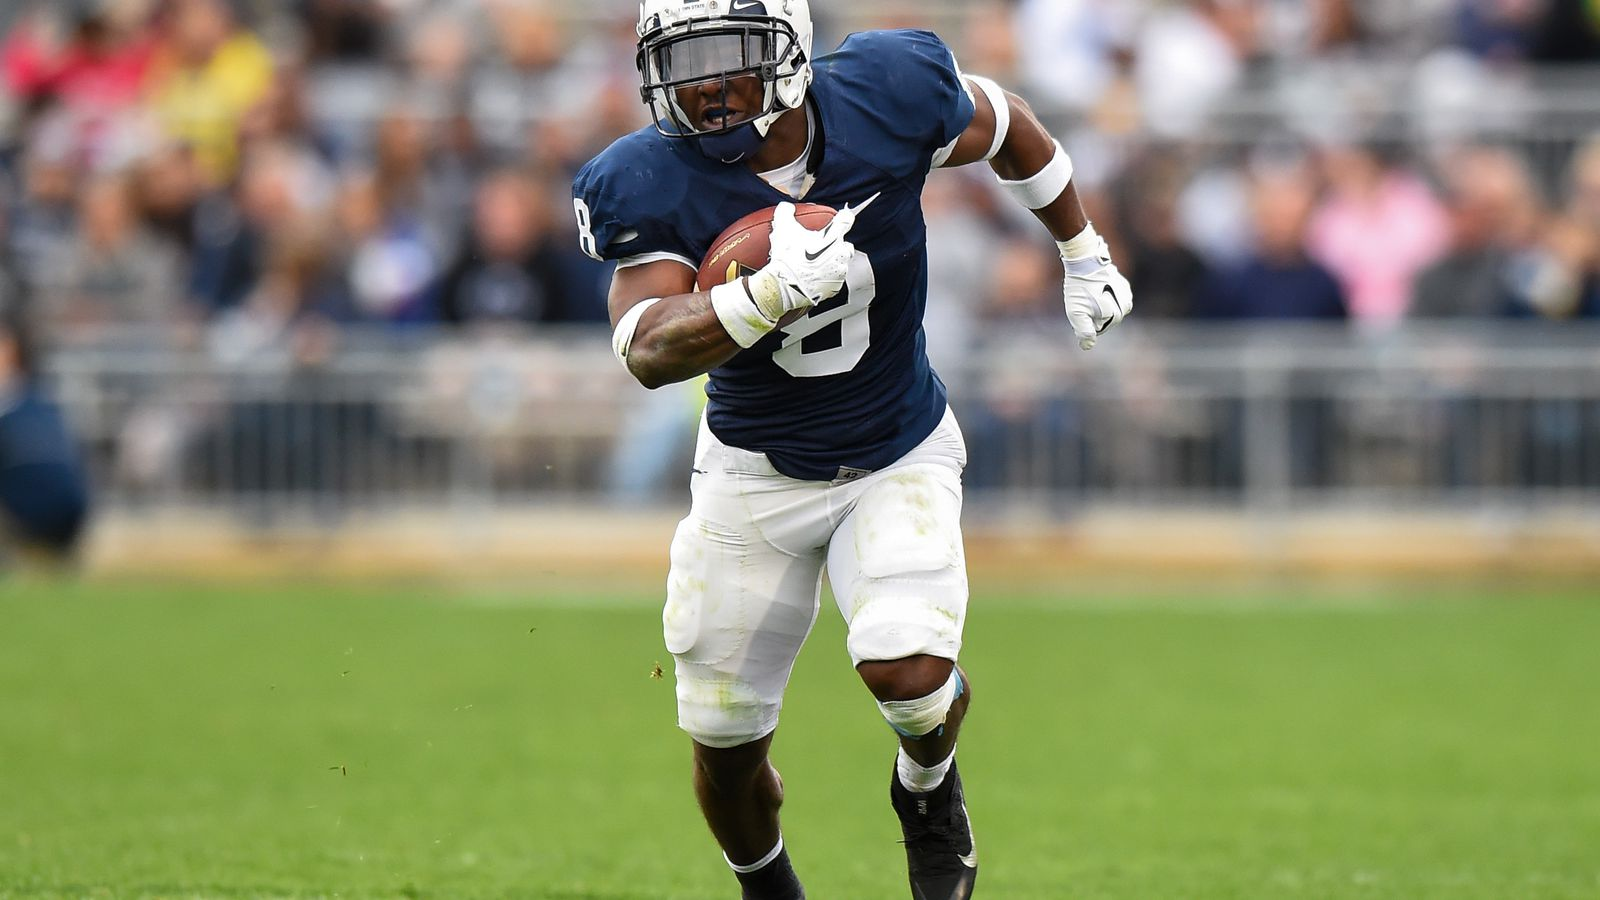 The latest Penn State Football News live from State College PA